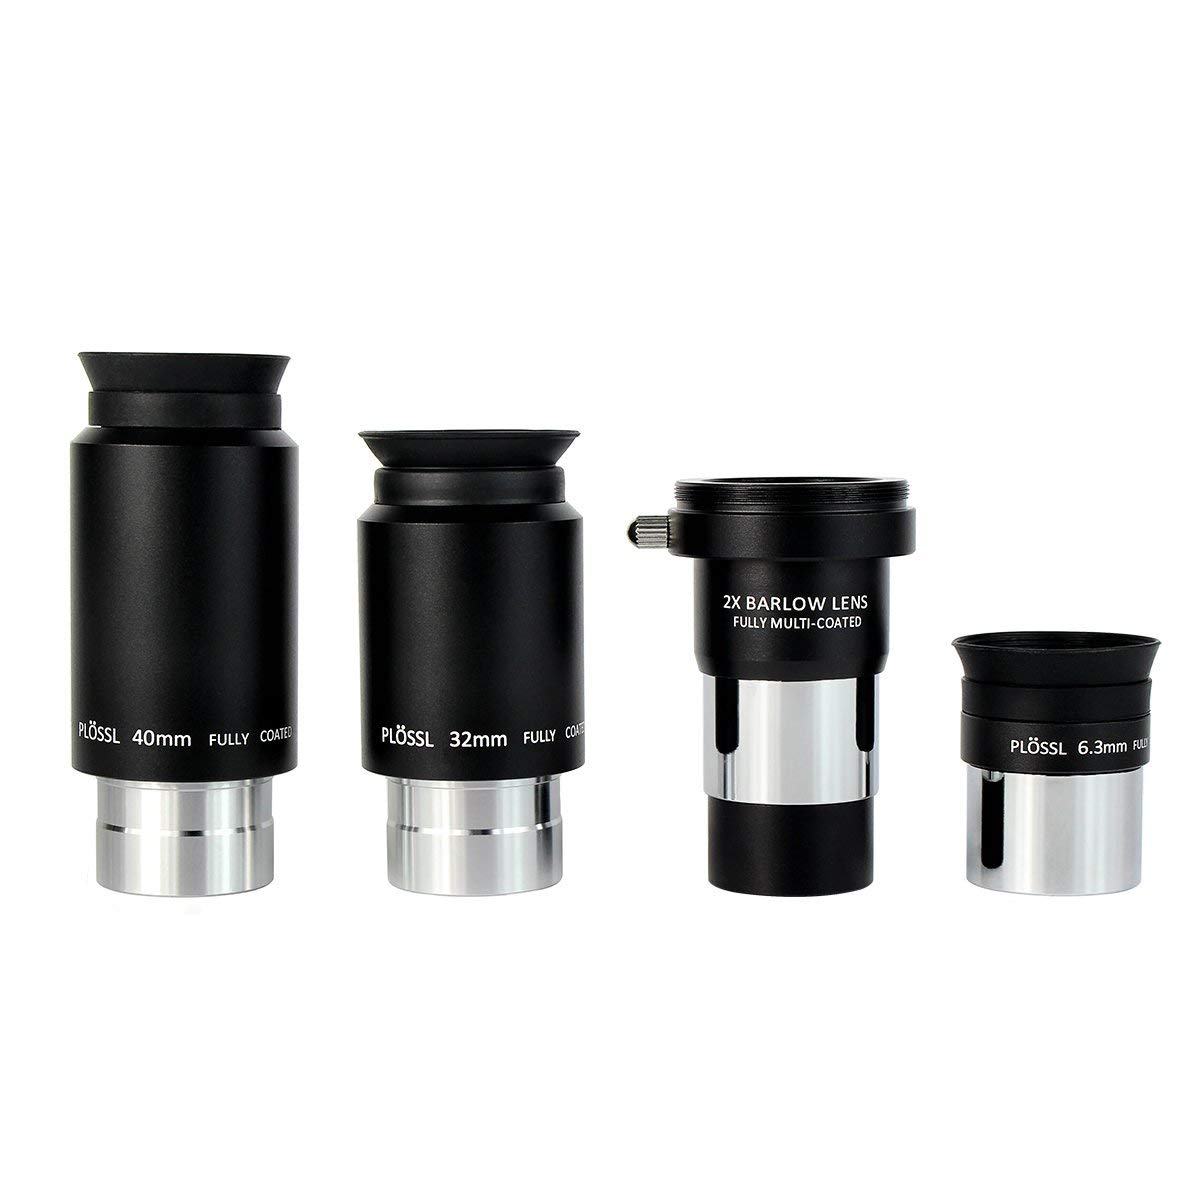 SVBONY Telescope Eyepiece Set Telescope Accessory Set with 2x Barlow Lens 4 Element Plossl Design 6.3mm 32mm 40mm for Astronomical Telescopes by SVBONY